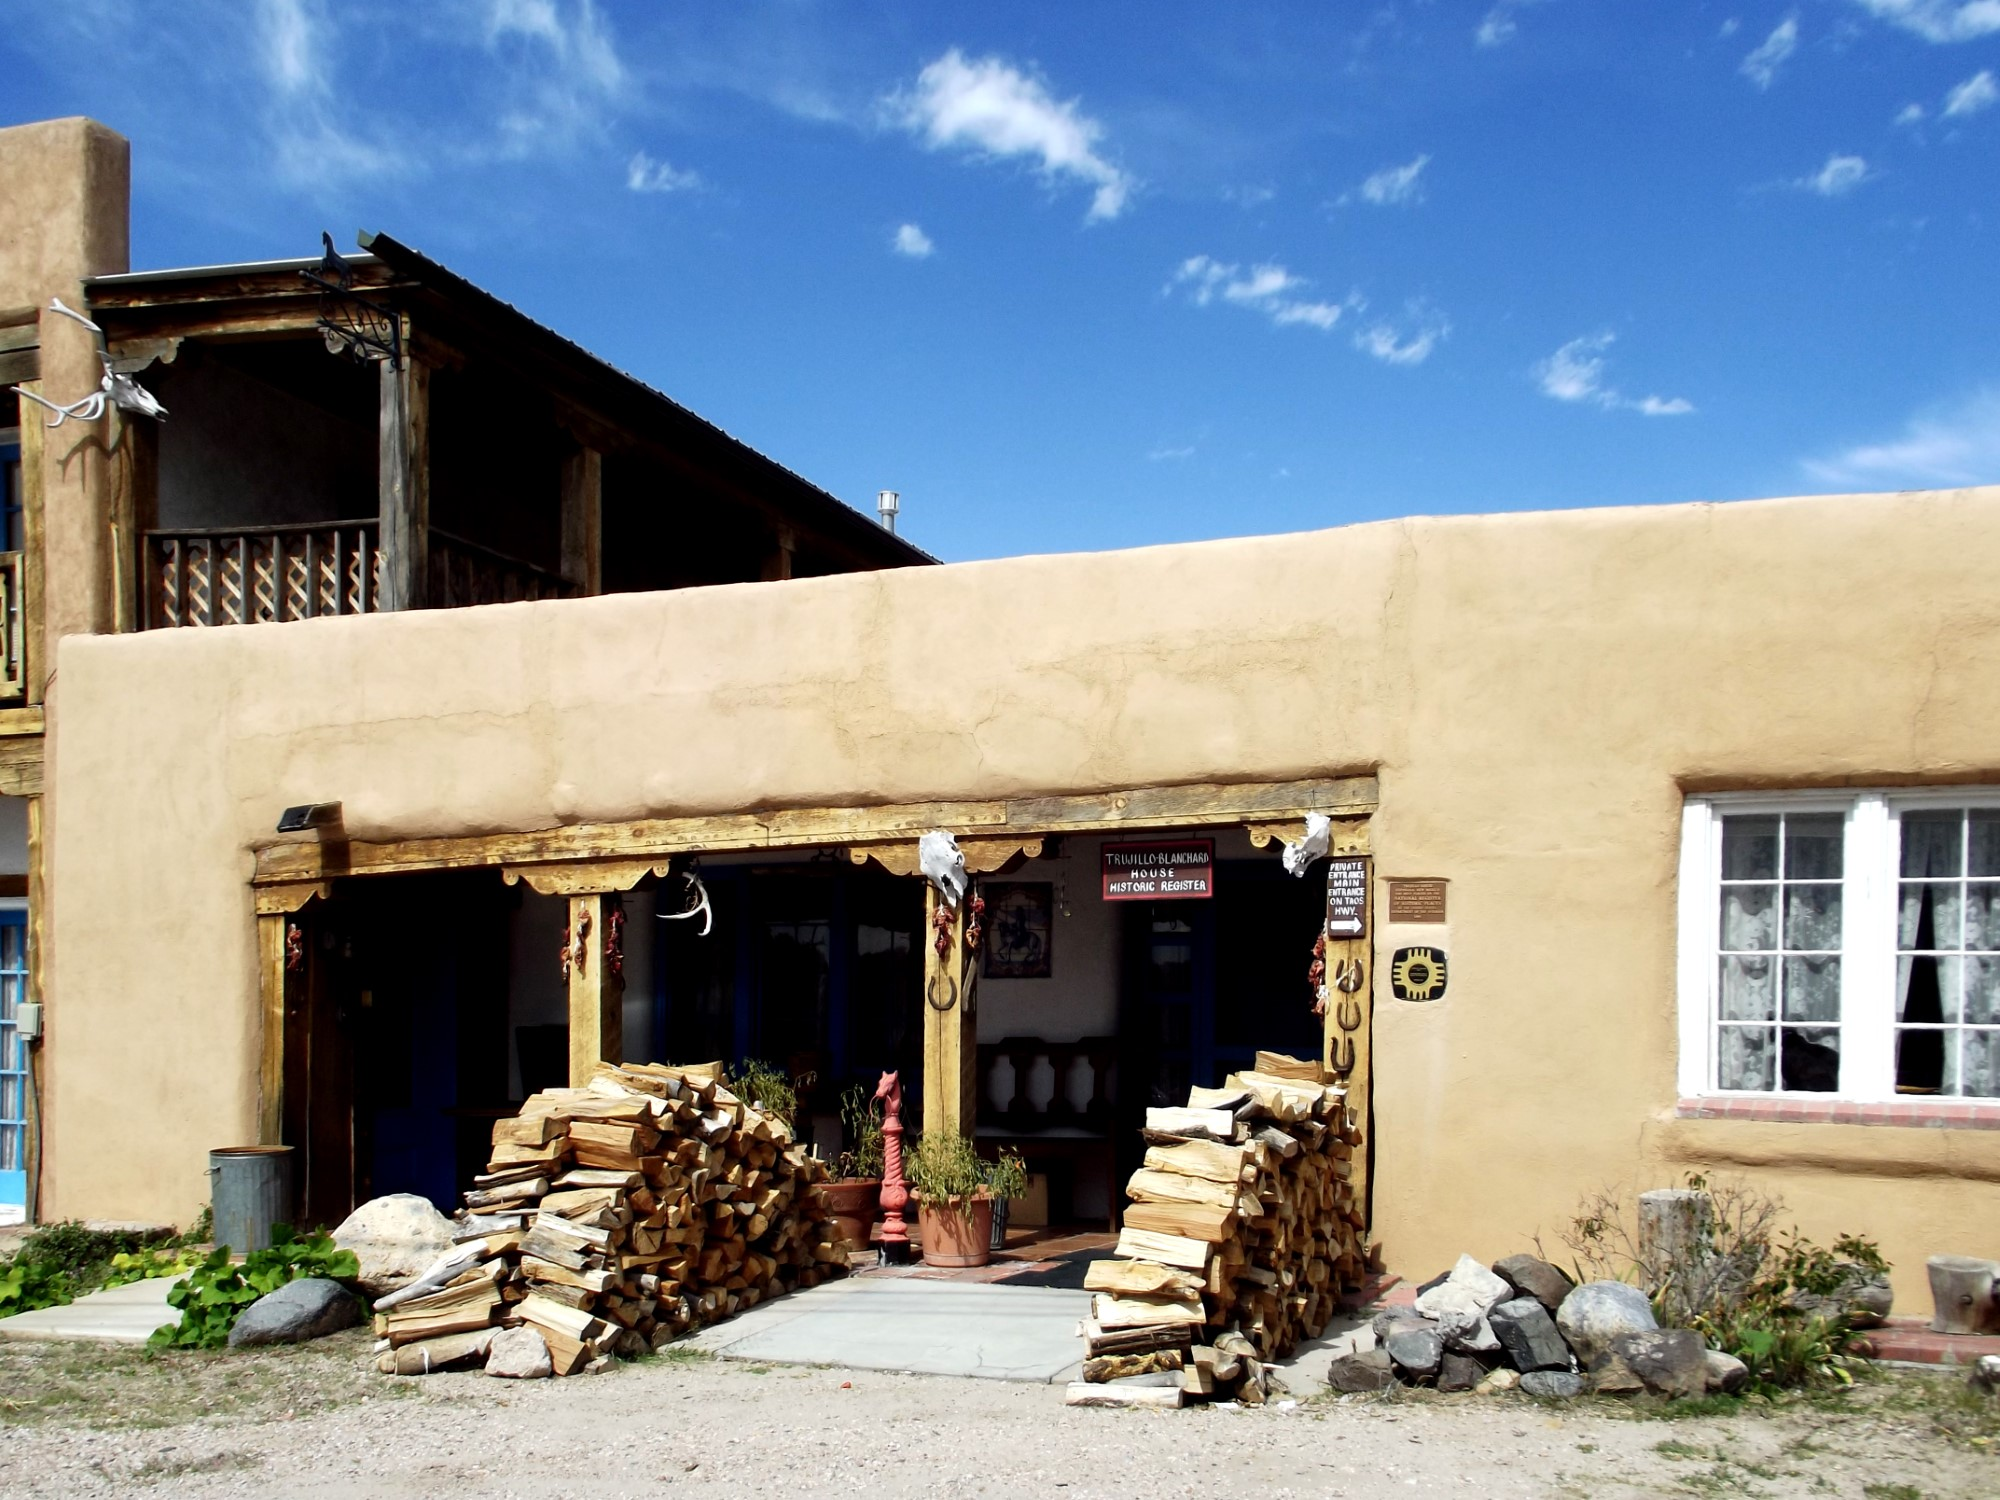 Adobe building with woodpiles